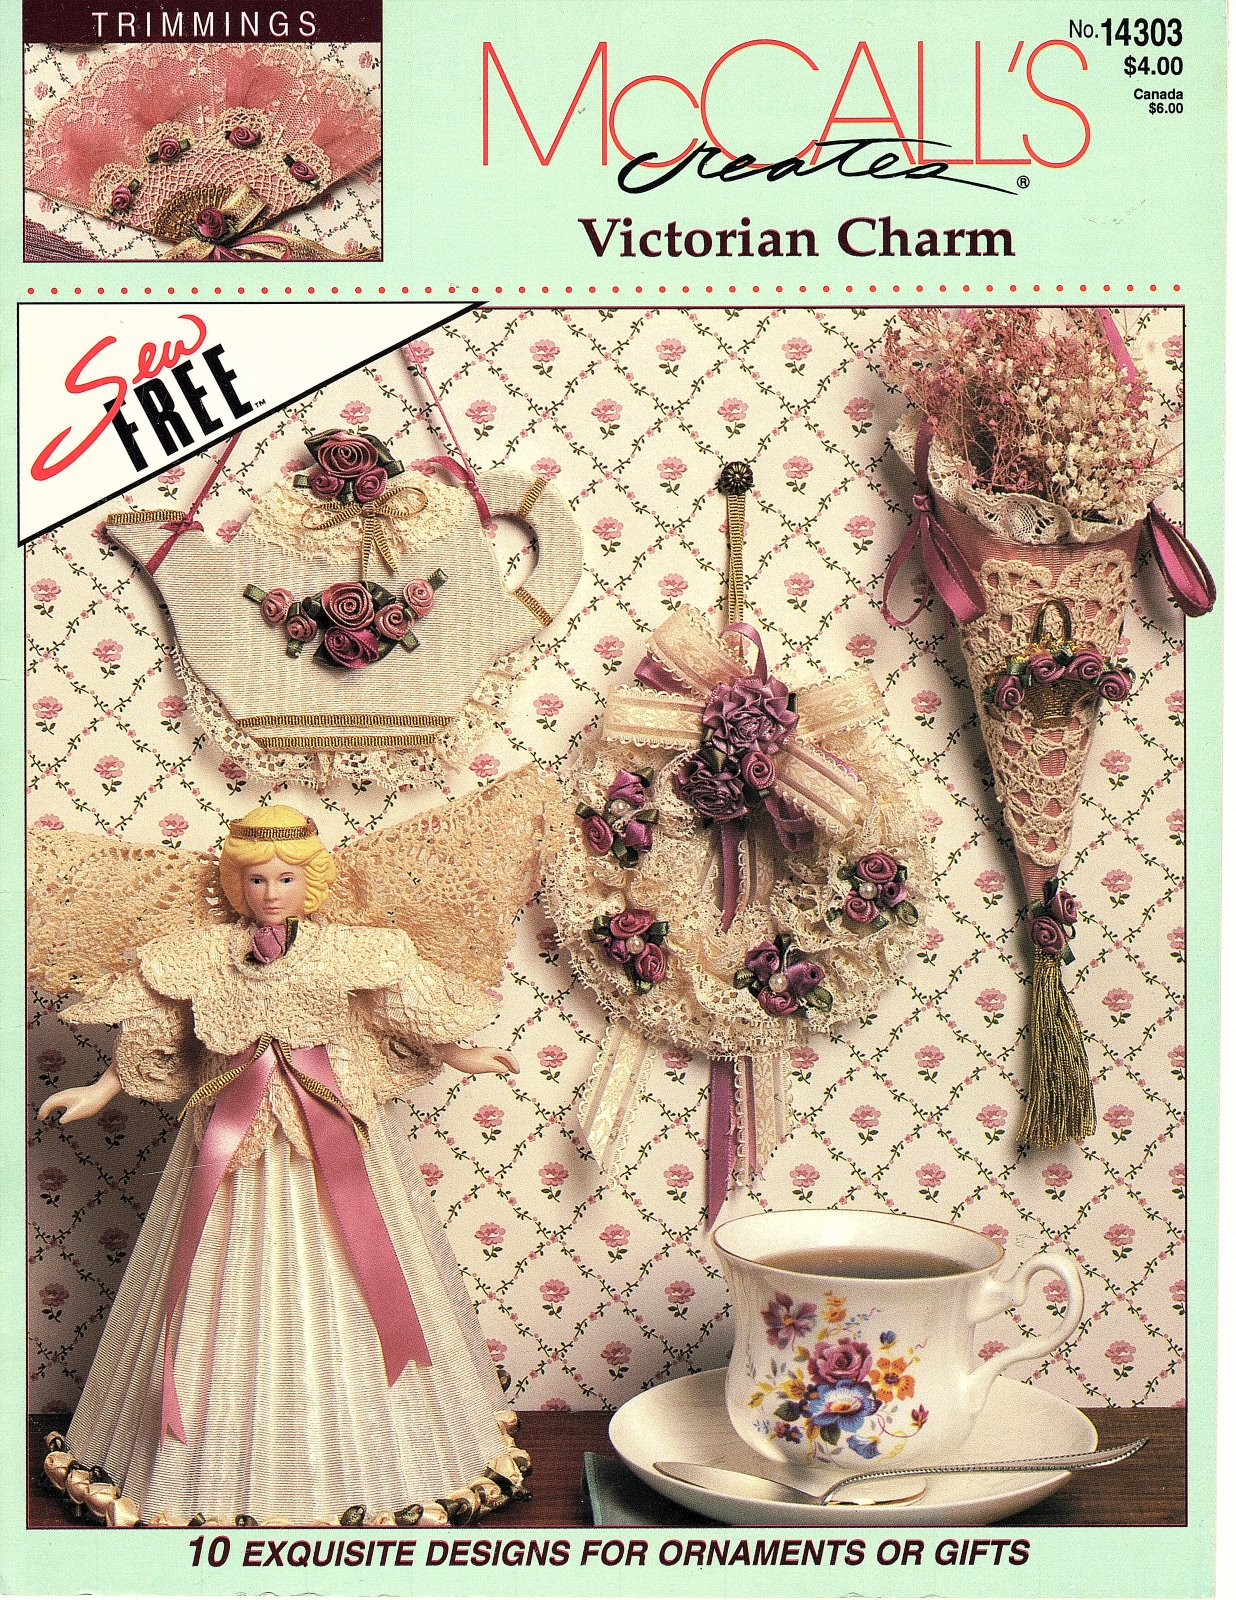 Victorian Charm by McCall's Creates - 10 Designs  Exquisite designs for ornaments or giftss